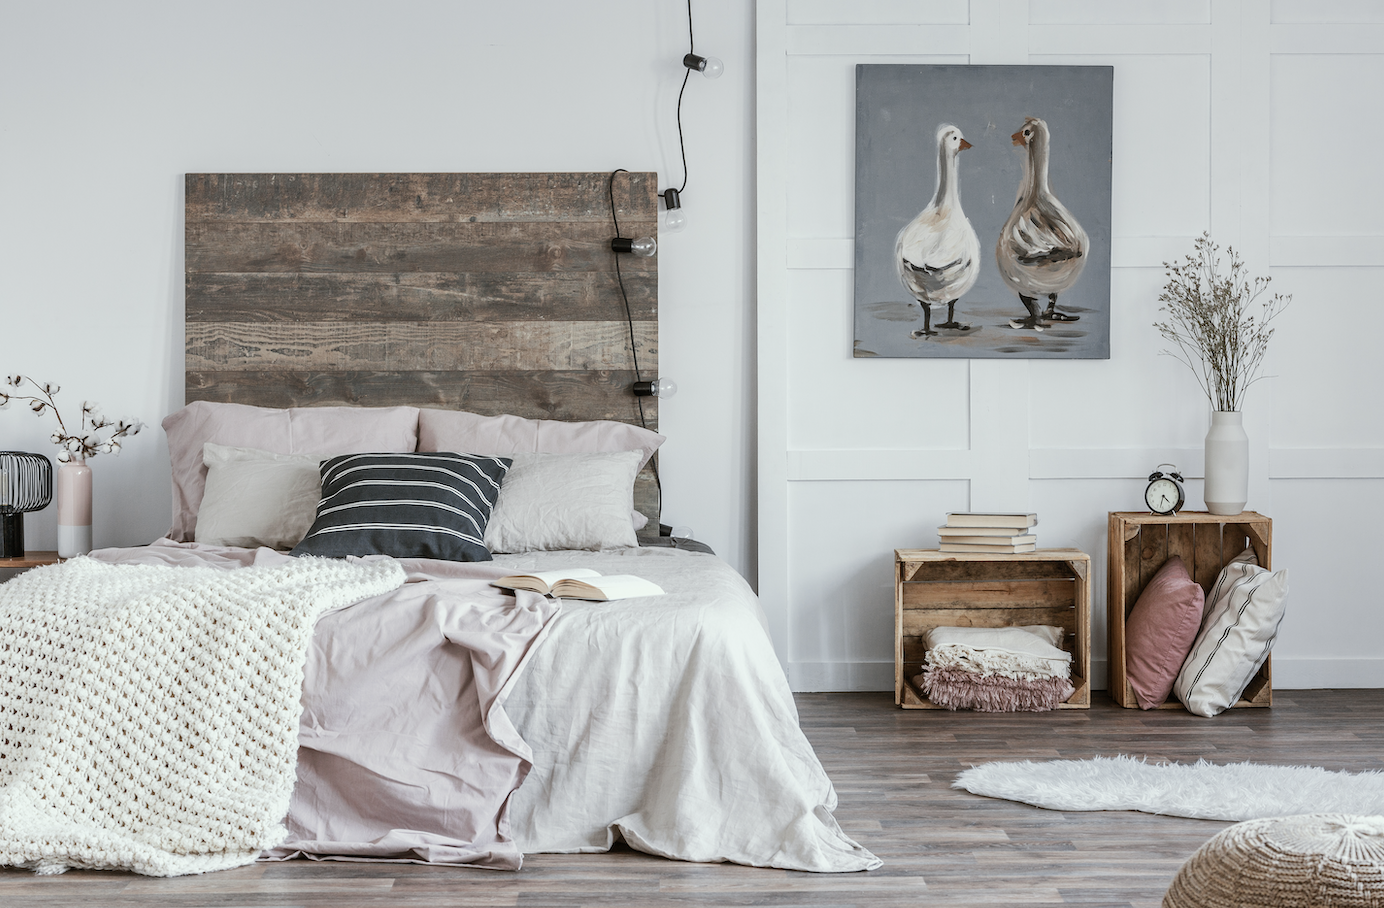 A rustic style bedroom with full bedding.